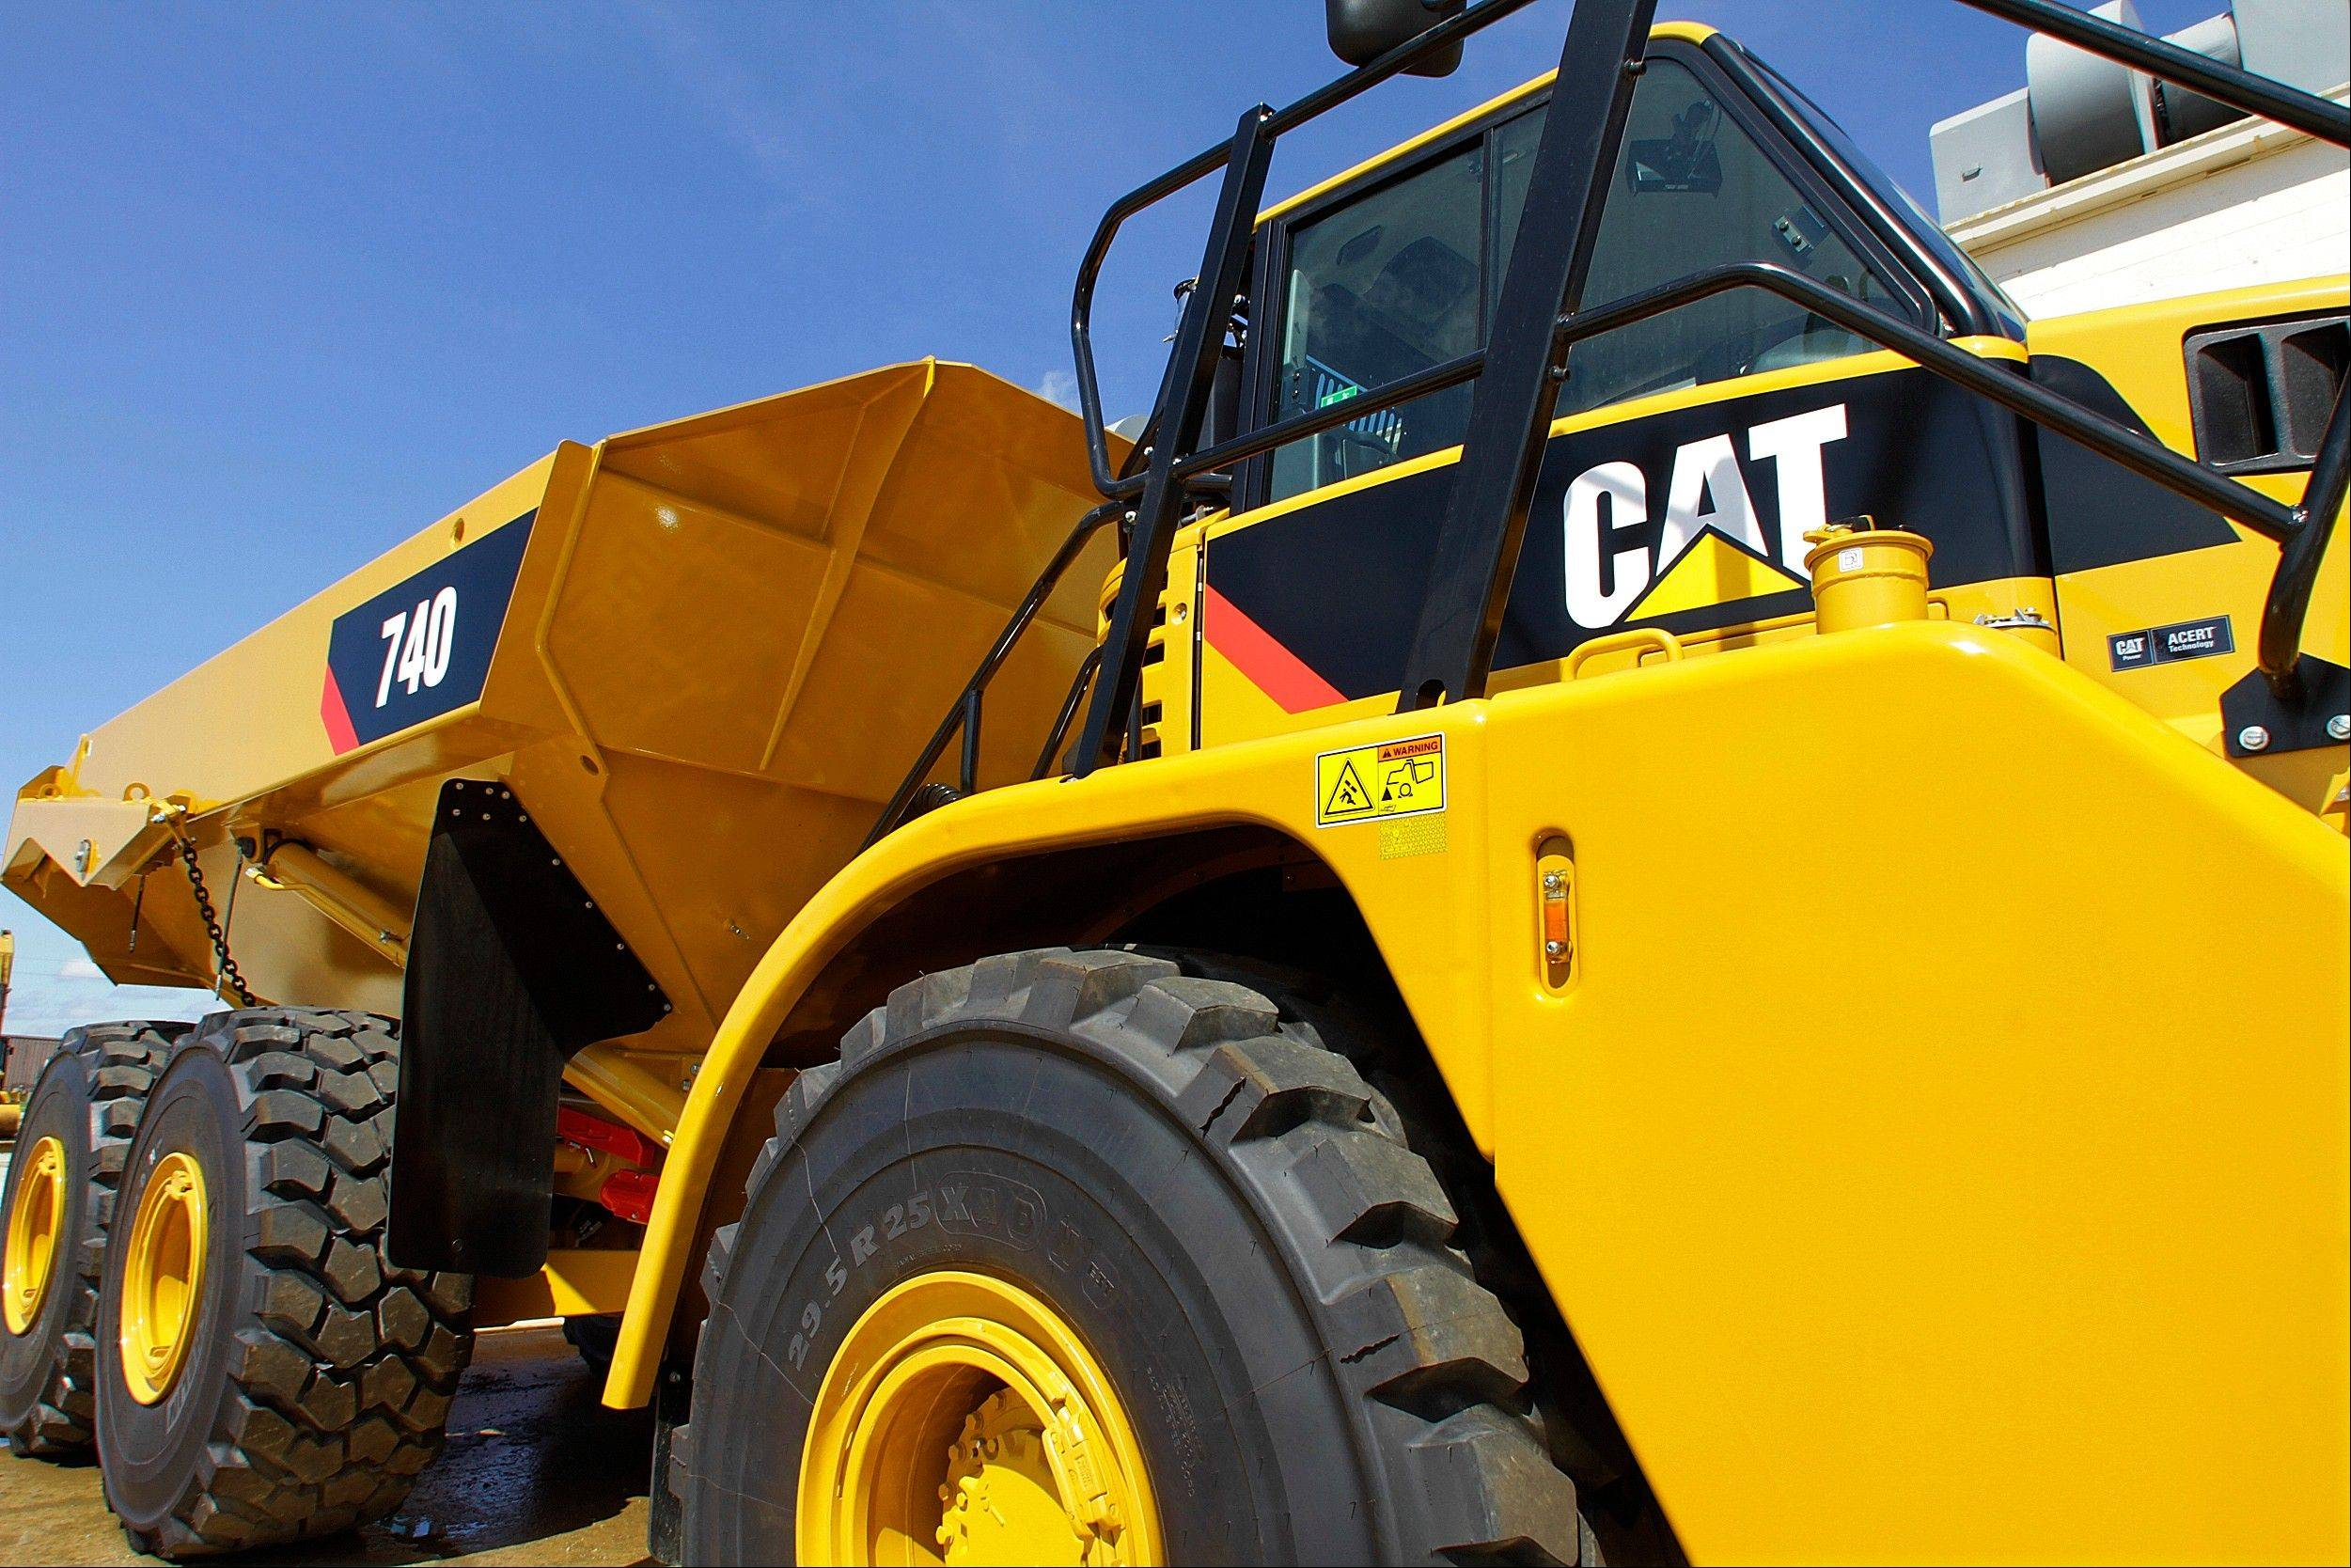 U.S investment firm MSCI Inc. says it has removed Peoria-based Caterpillar Inc. from three of its popular indexes that track socially responsible investments,